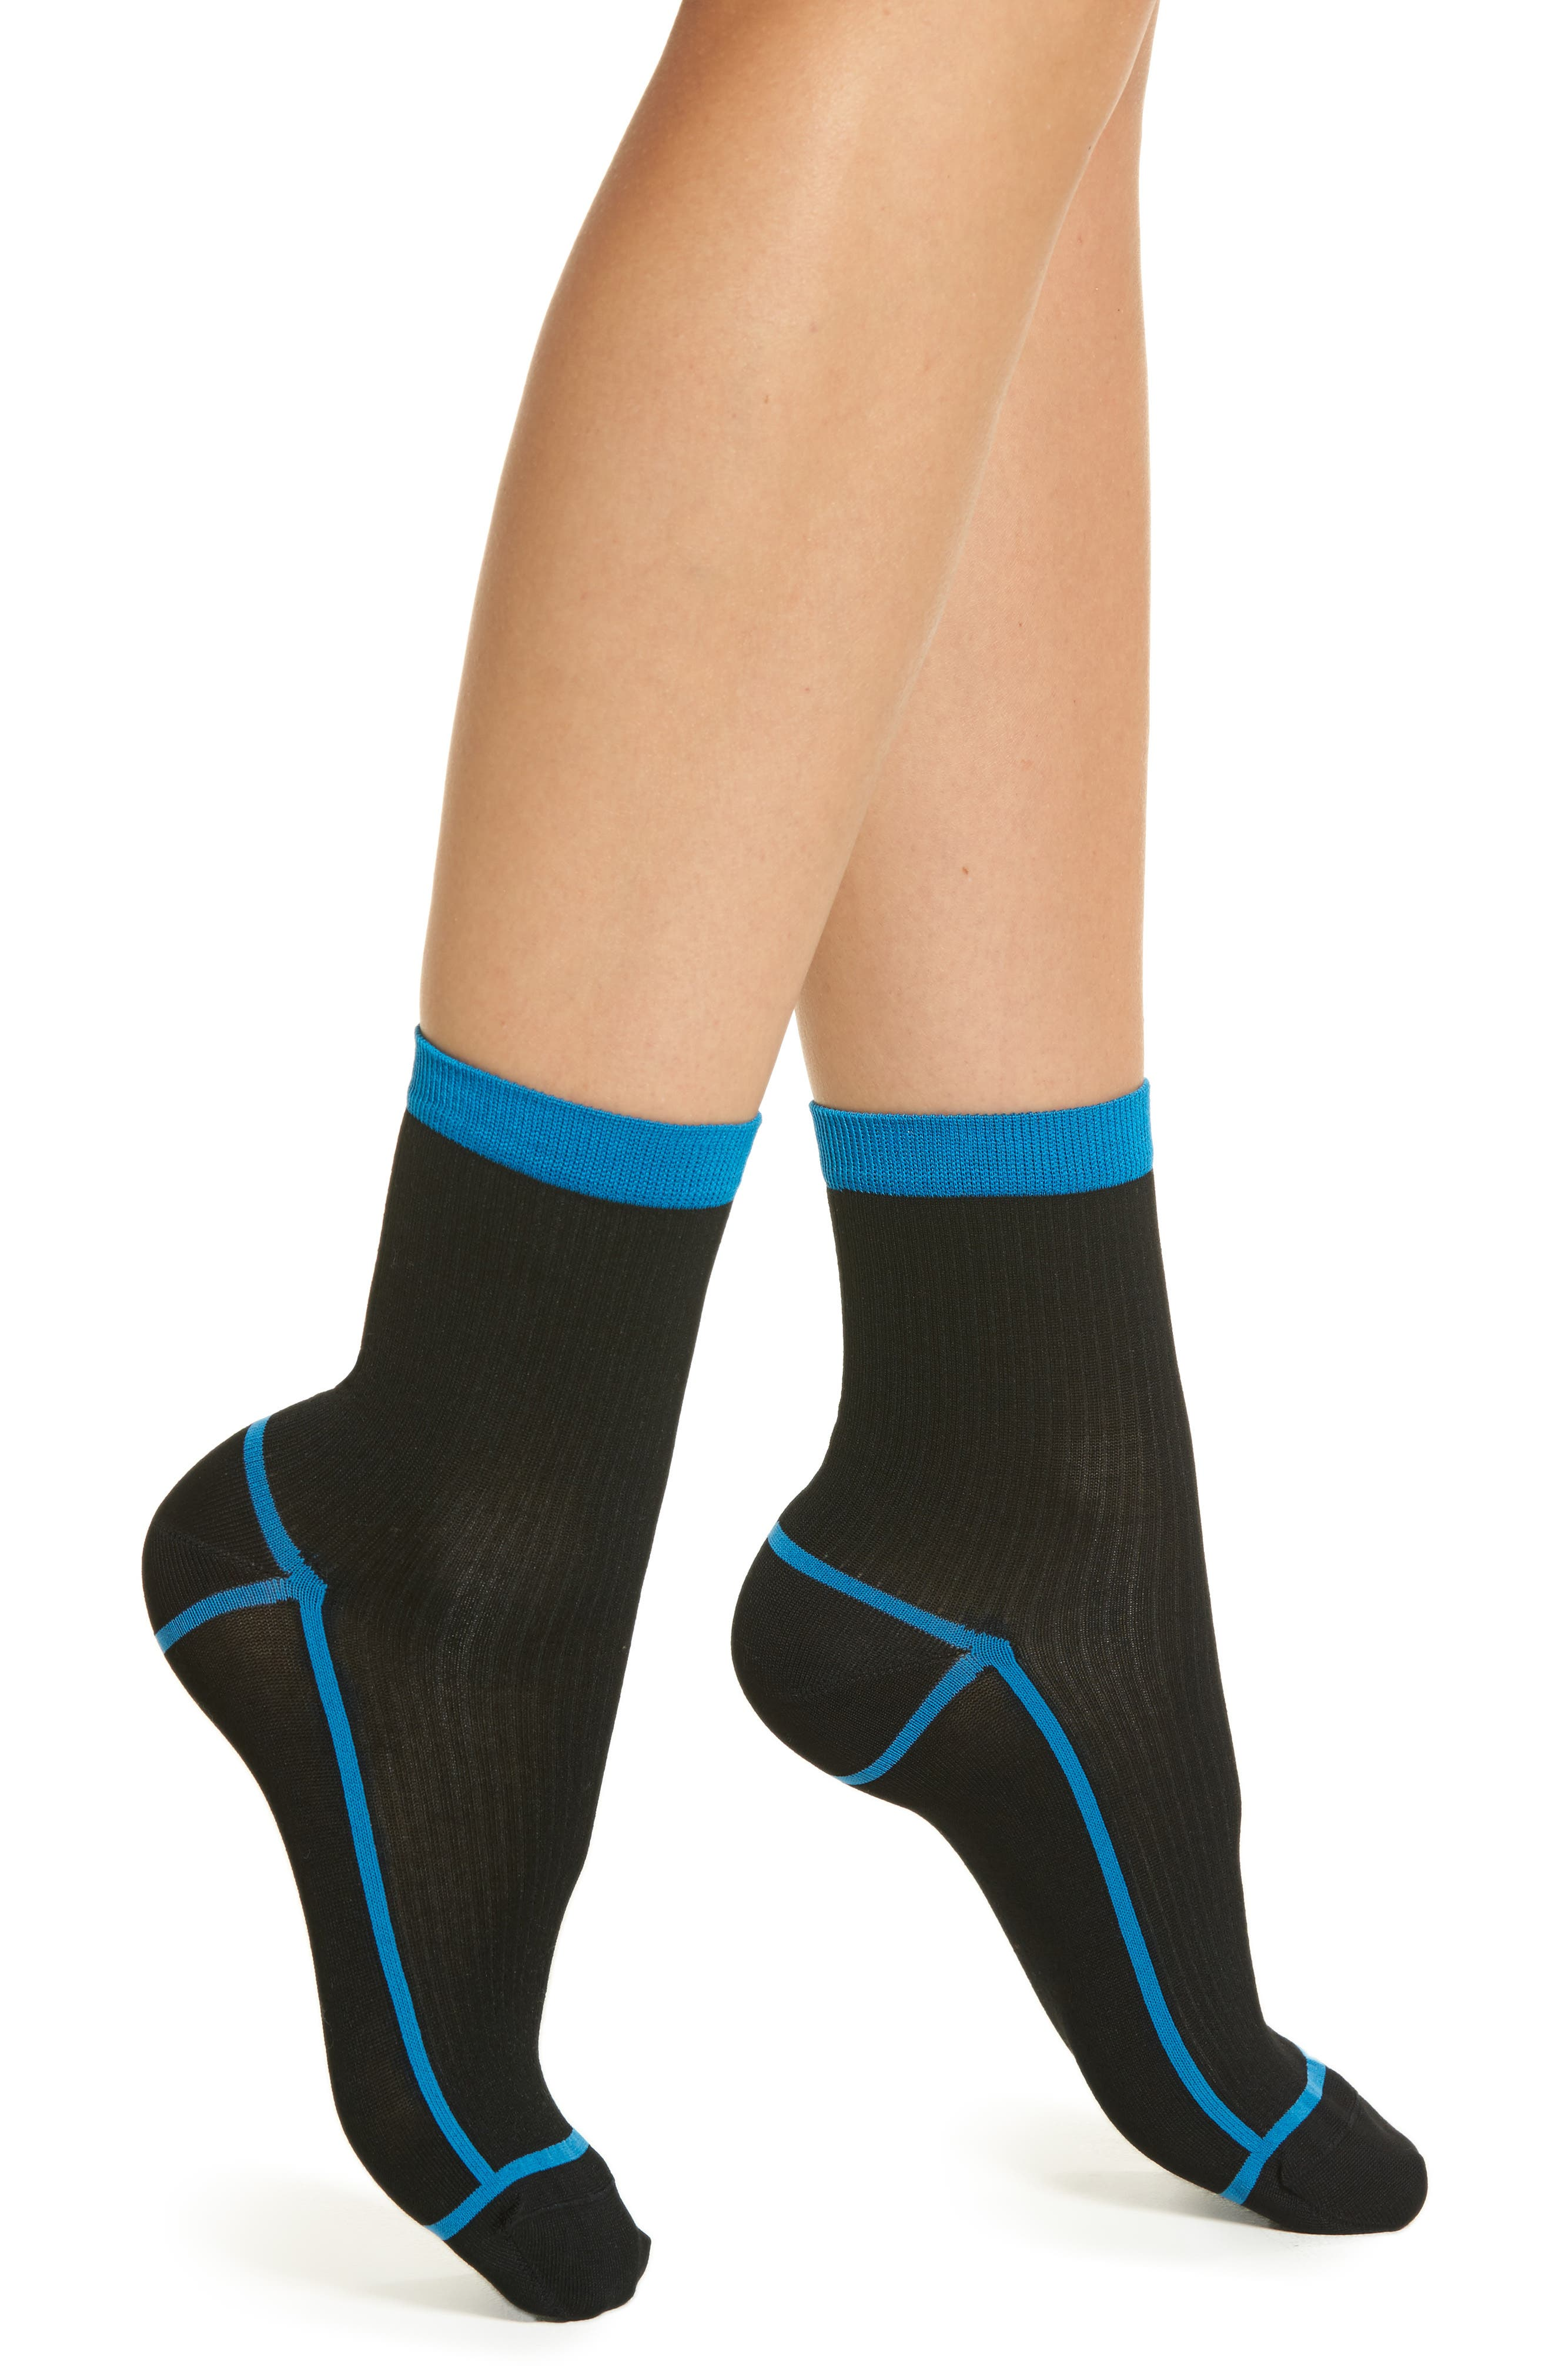 Lily Rib Ankle Socks,                         Main,                         color, 012